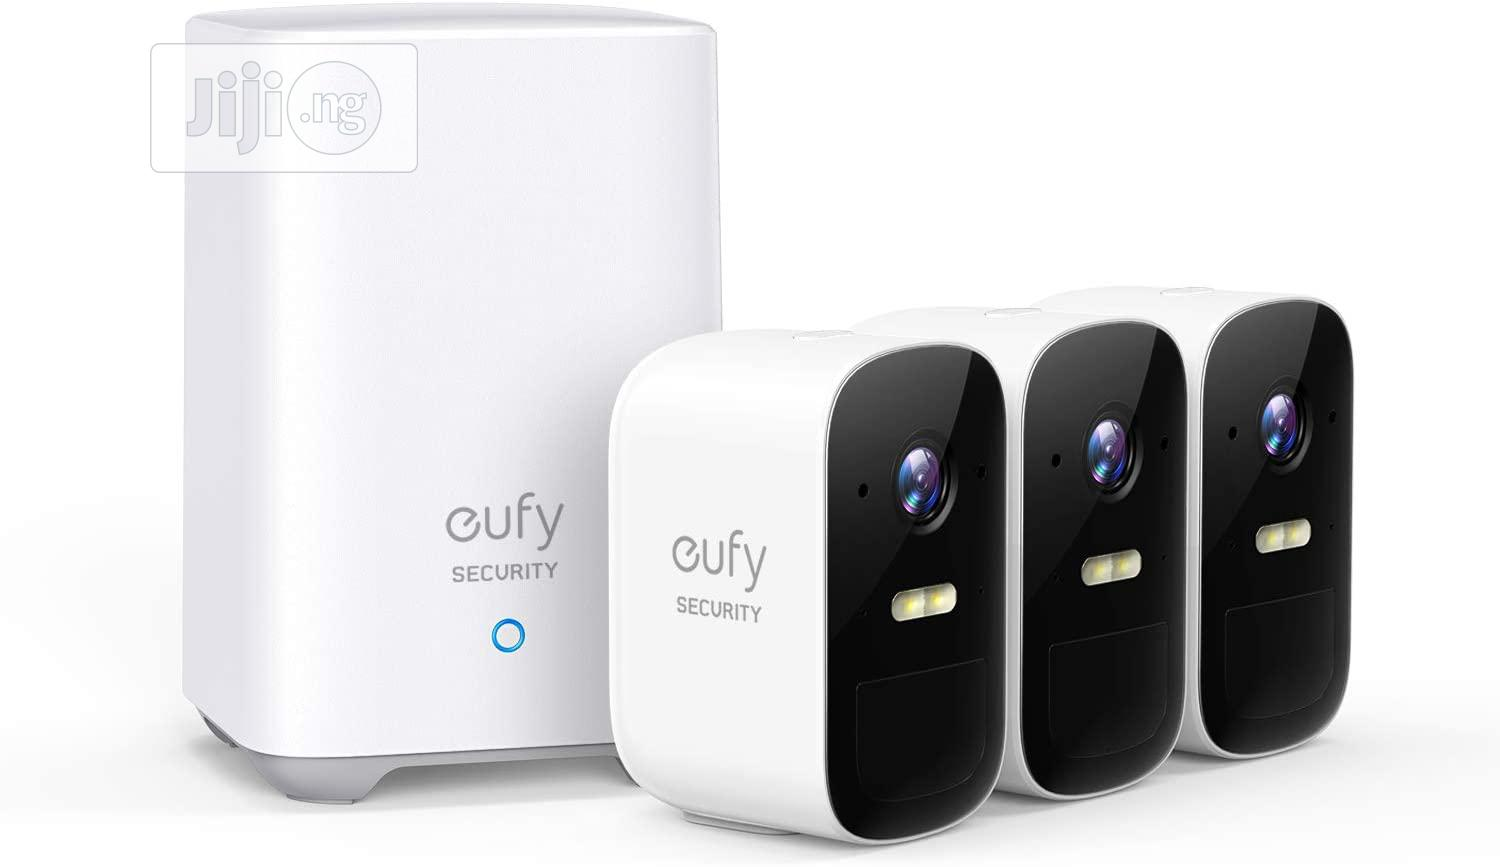 Eufycam 2C Wireless Home Security Camera System 180days